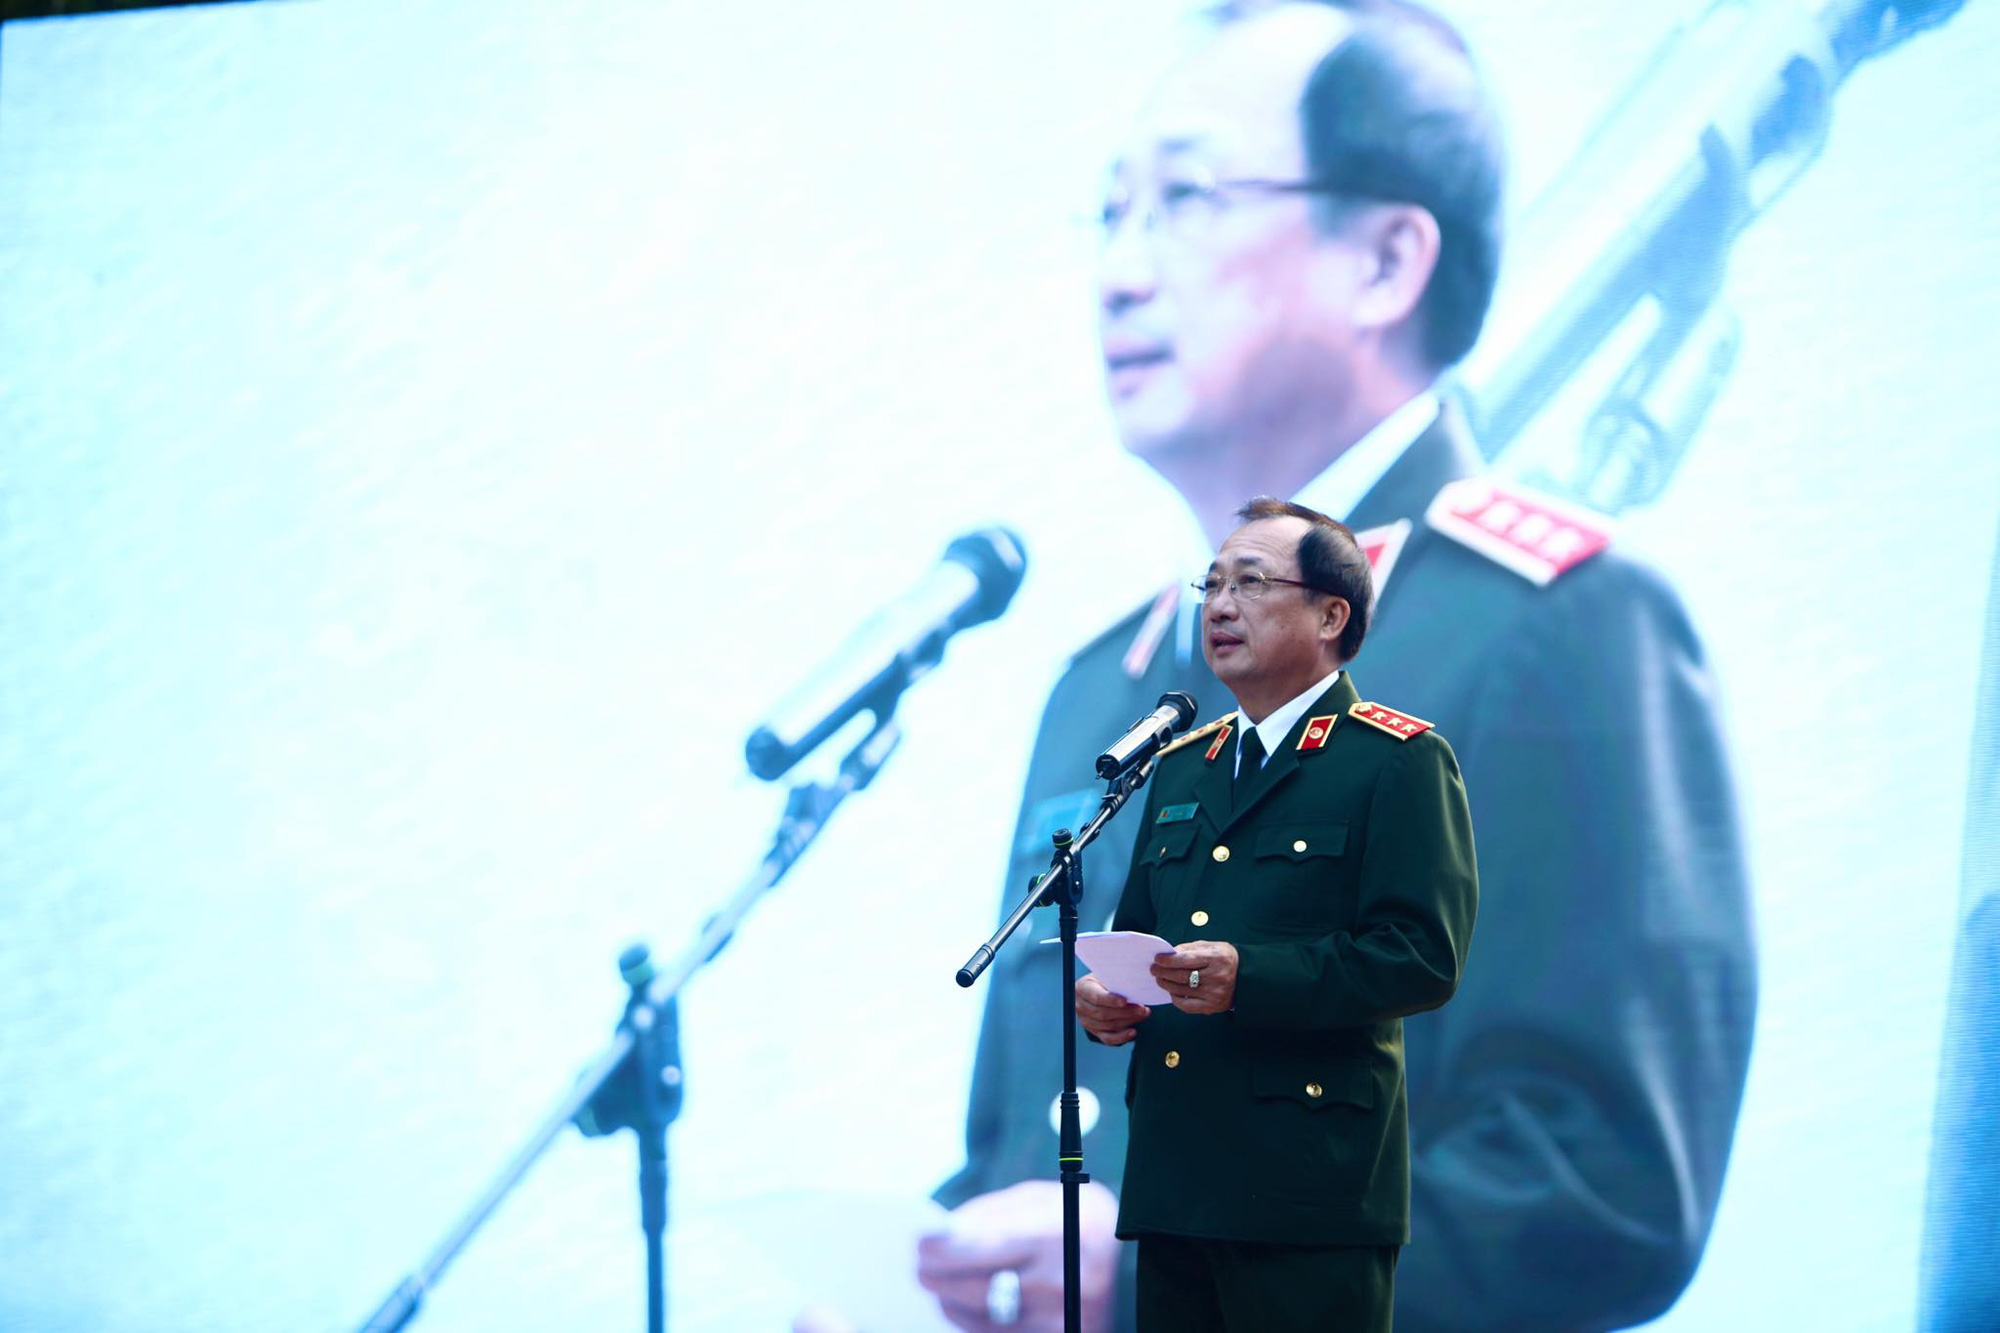 Vietnamese Deputy Minister of Public Security Nguyen Van Thanh delivers his opening speech.